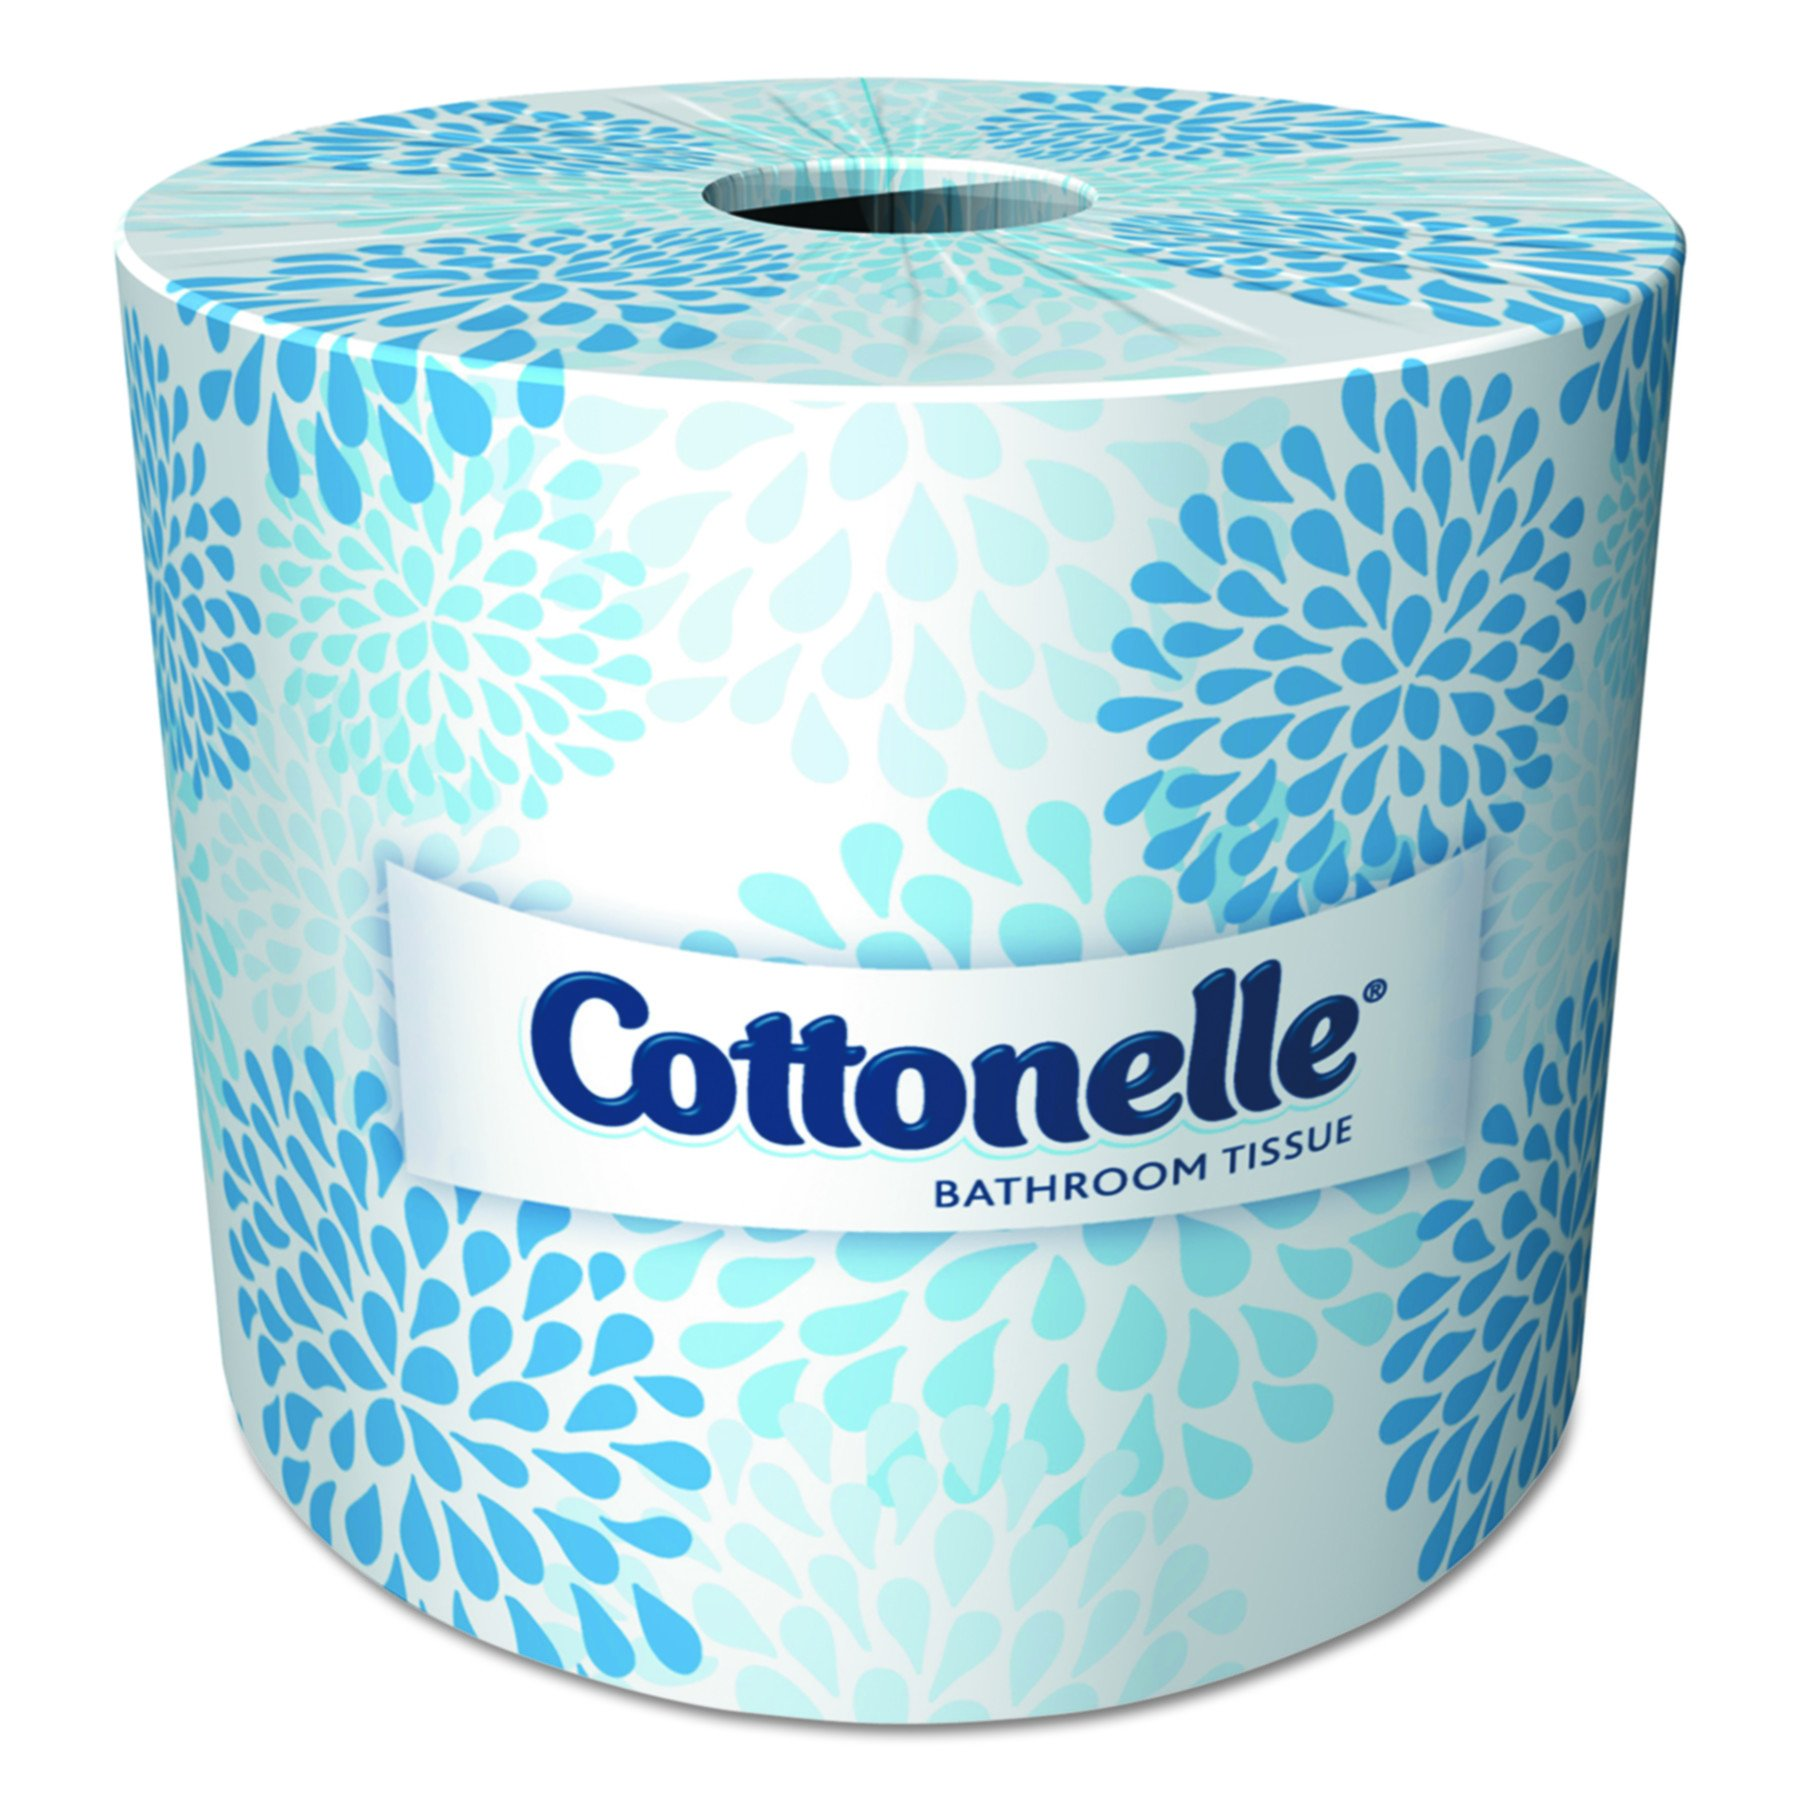 Cottonelle 17713 Two-Ply Bathroom Tissue, 451 Sheets per Roll (Case of 60 Rolls)